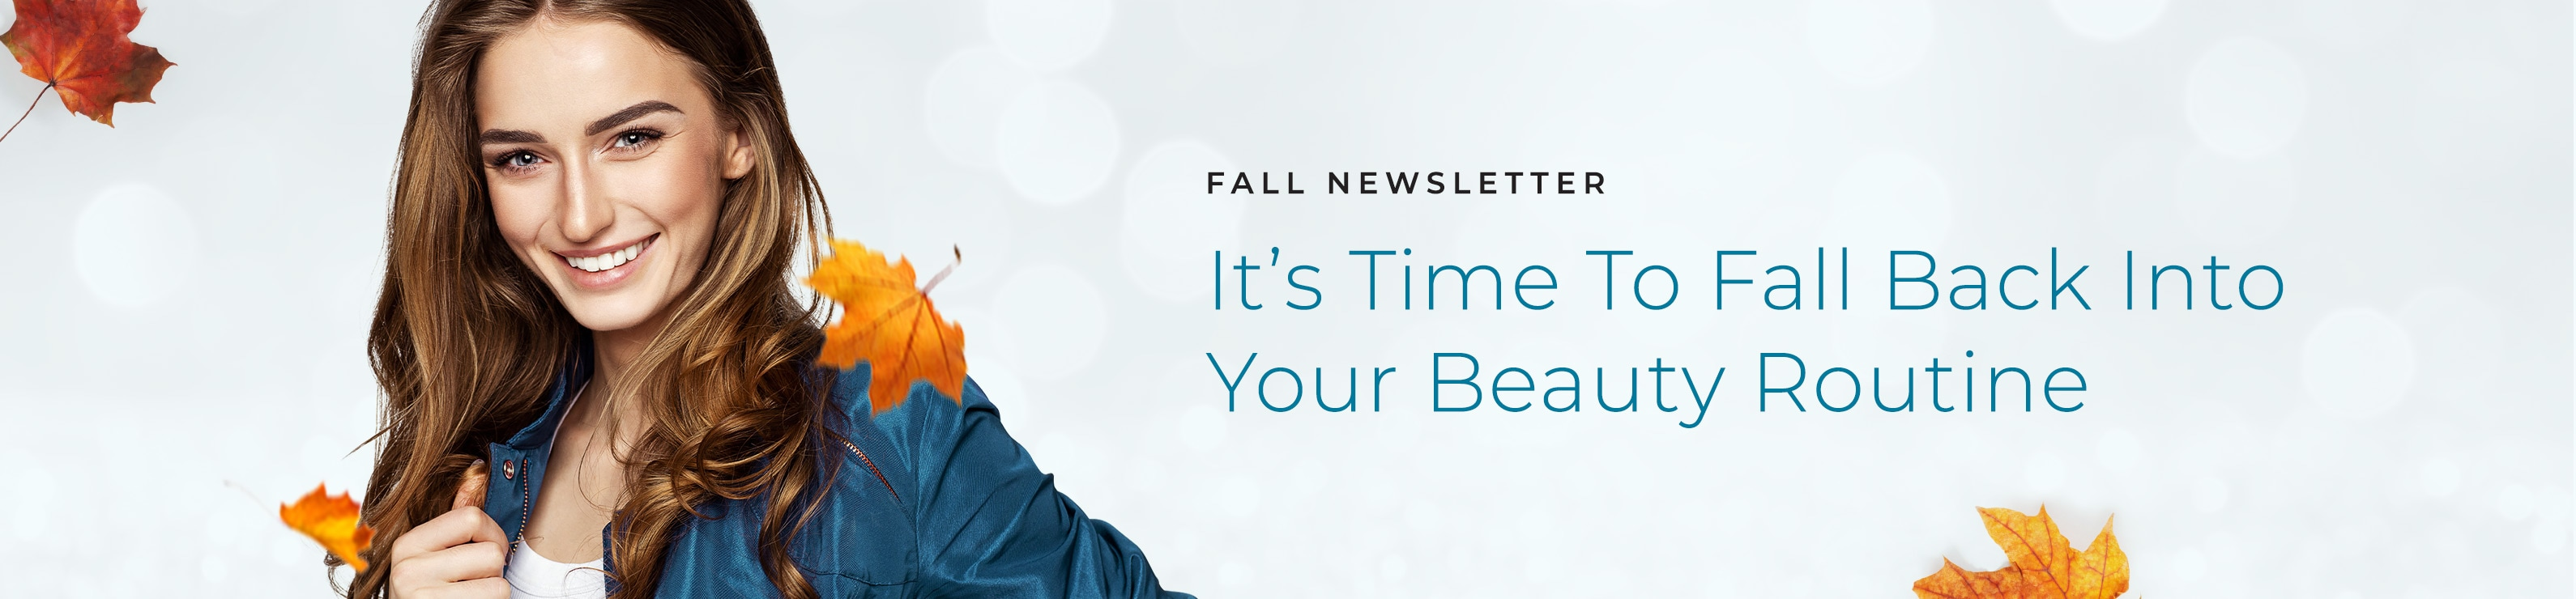 Fall Newsletter – It's time to fall back into your beauty routine